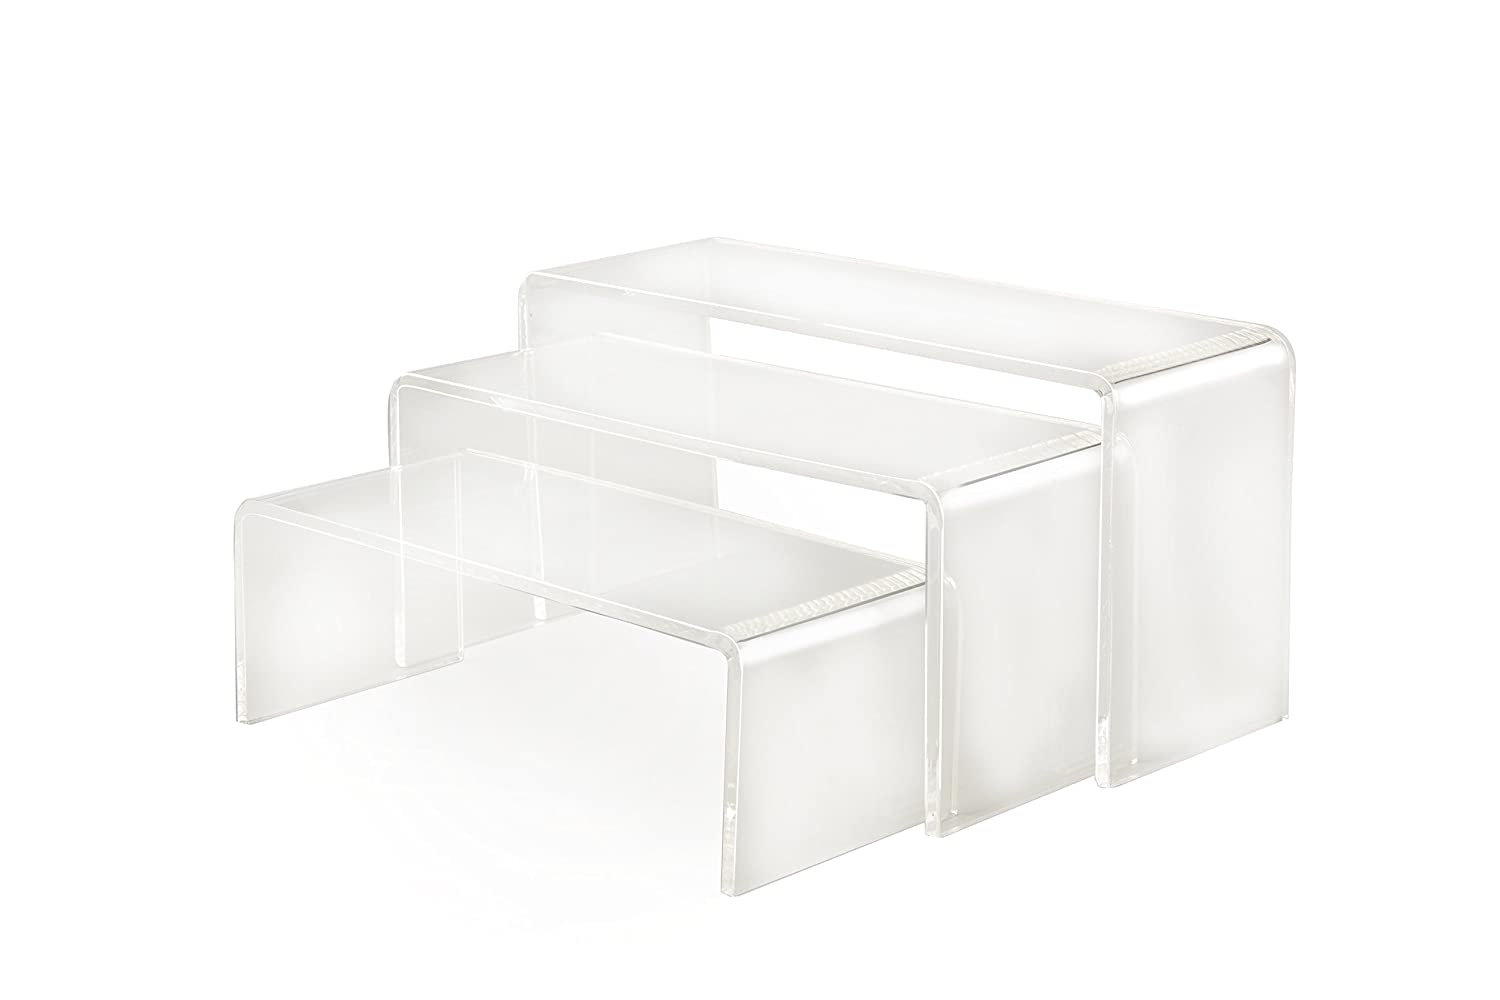 Small Crystal Clear Acrylic Display Stands | Display Plinths | Retail Displays | Set of 3 eezeUKmade